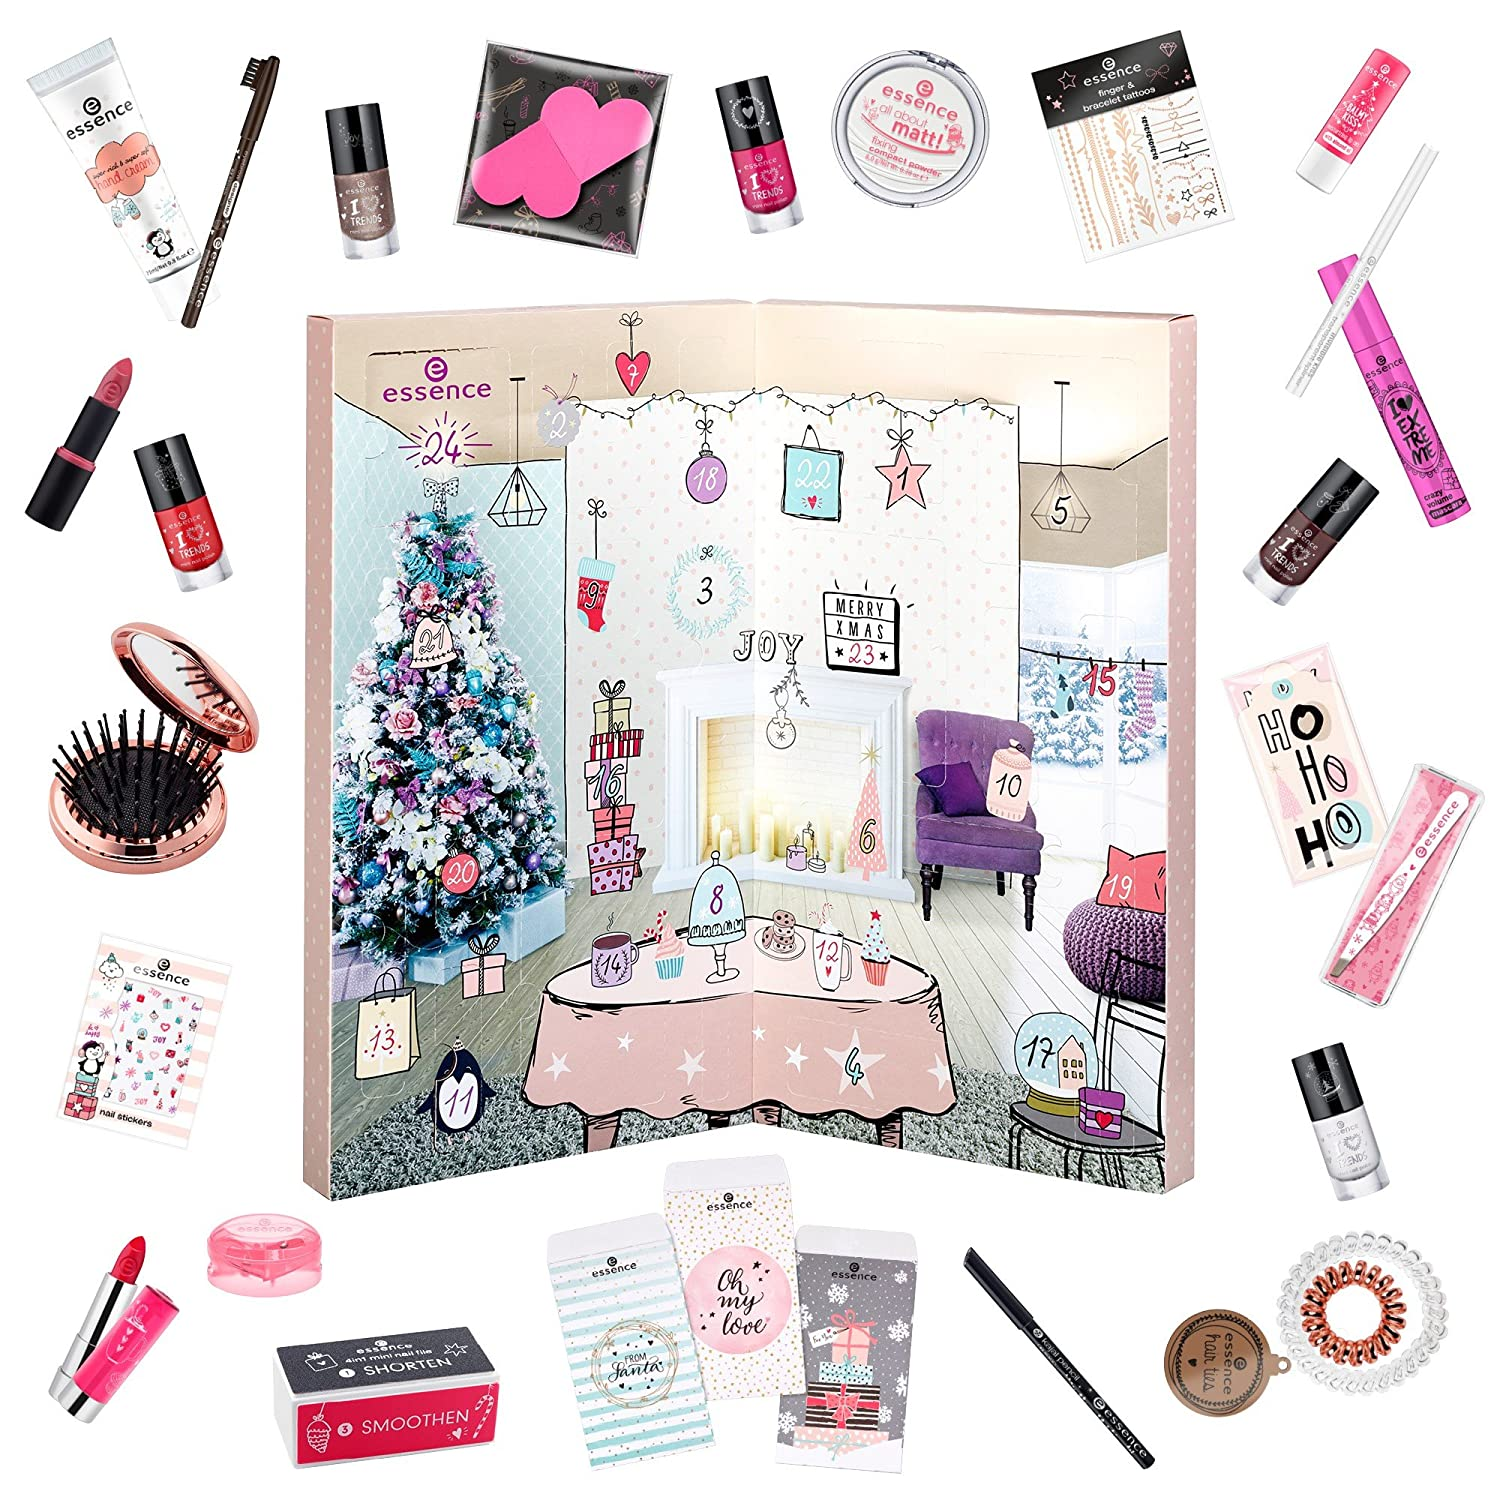 Calendario Avvento Essence.Essence Advent Calendar Beauty Make Up Cosmetic 24